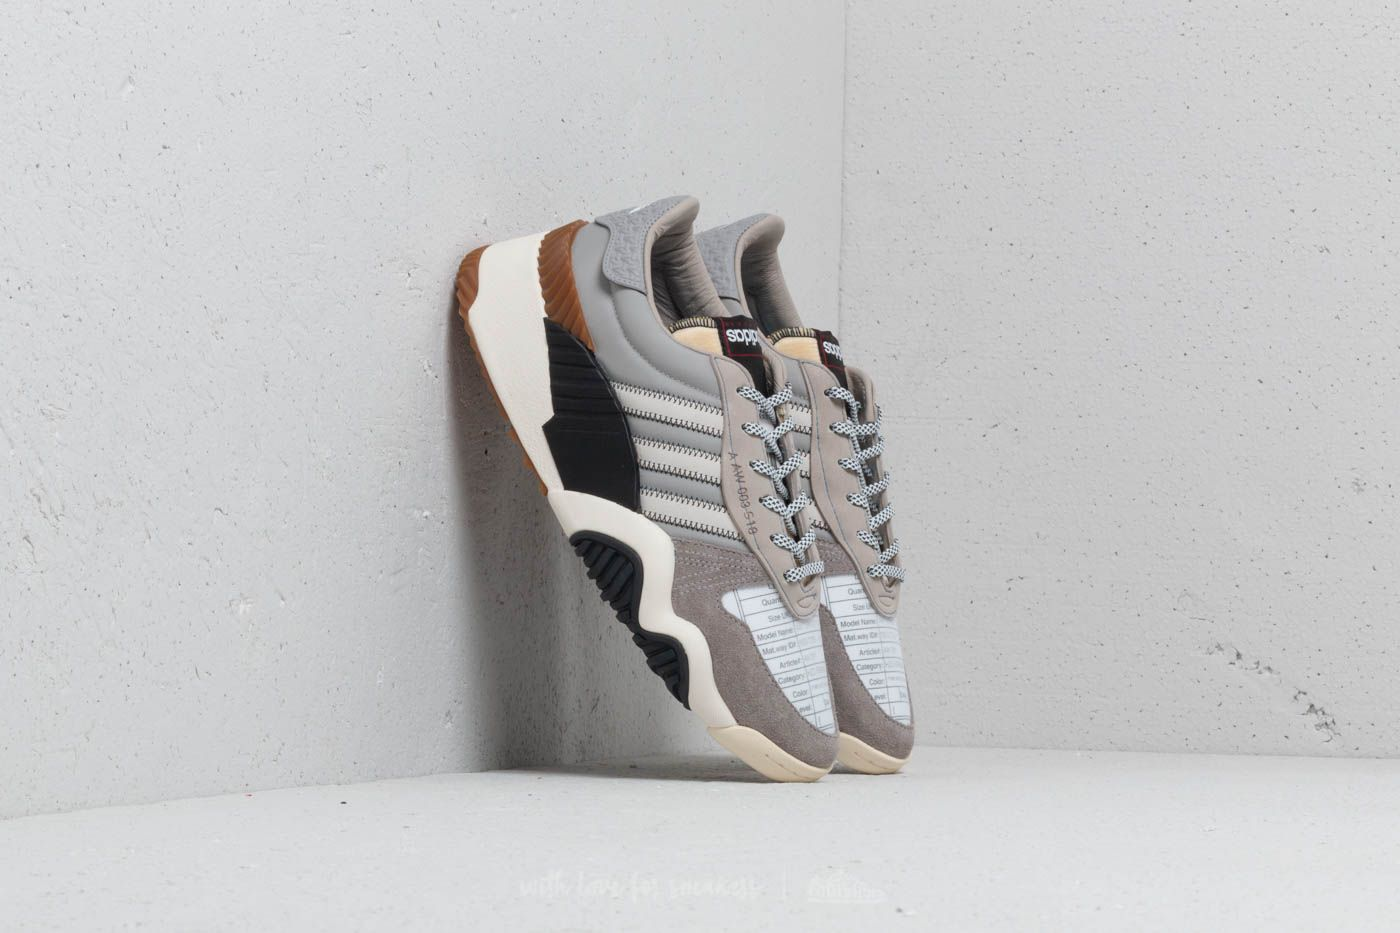 adidas x Alexander Wang Turnout Trainer Light Grey/ Chalk White/ Core Black